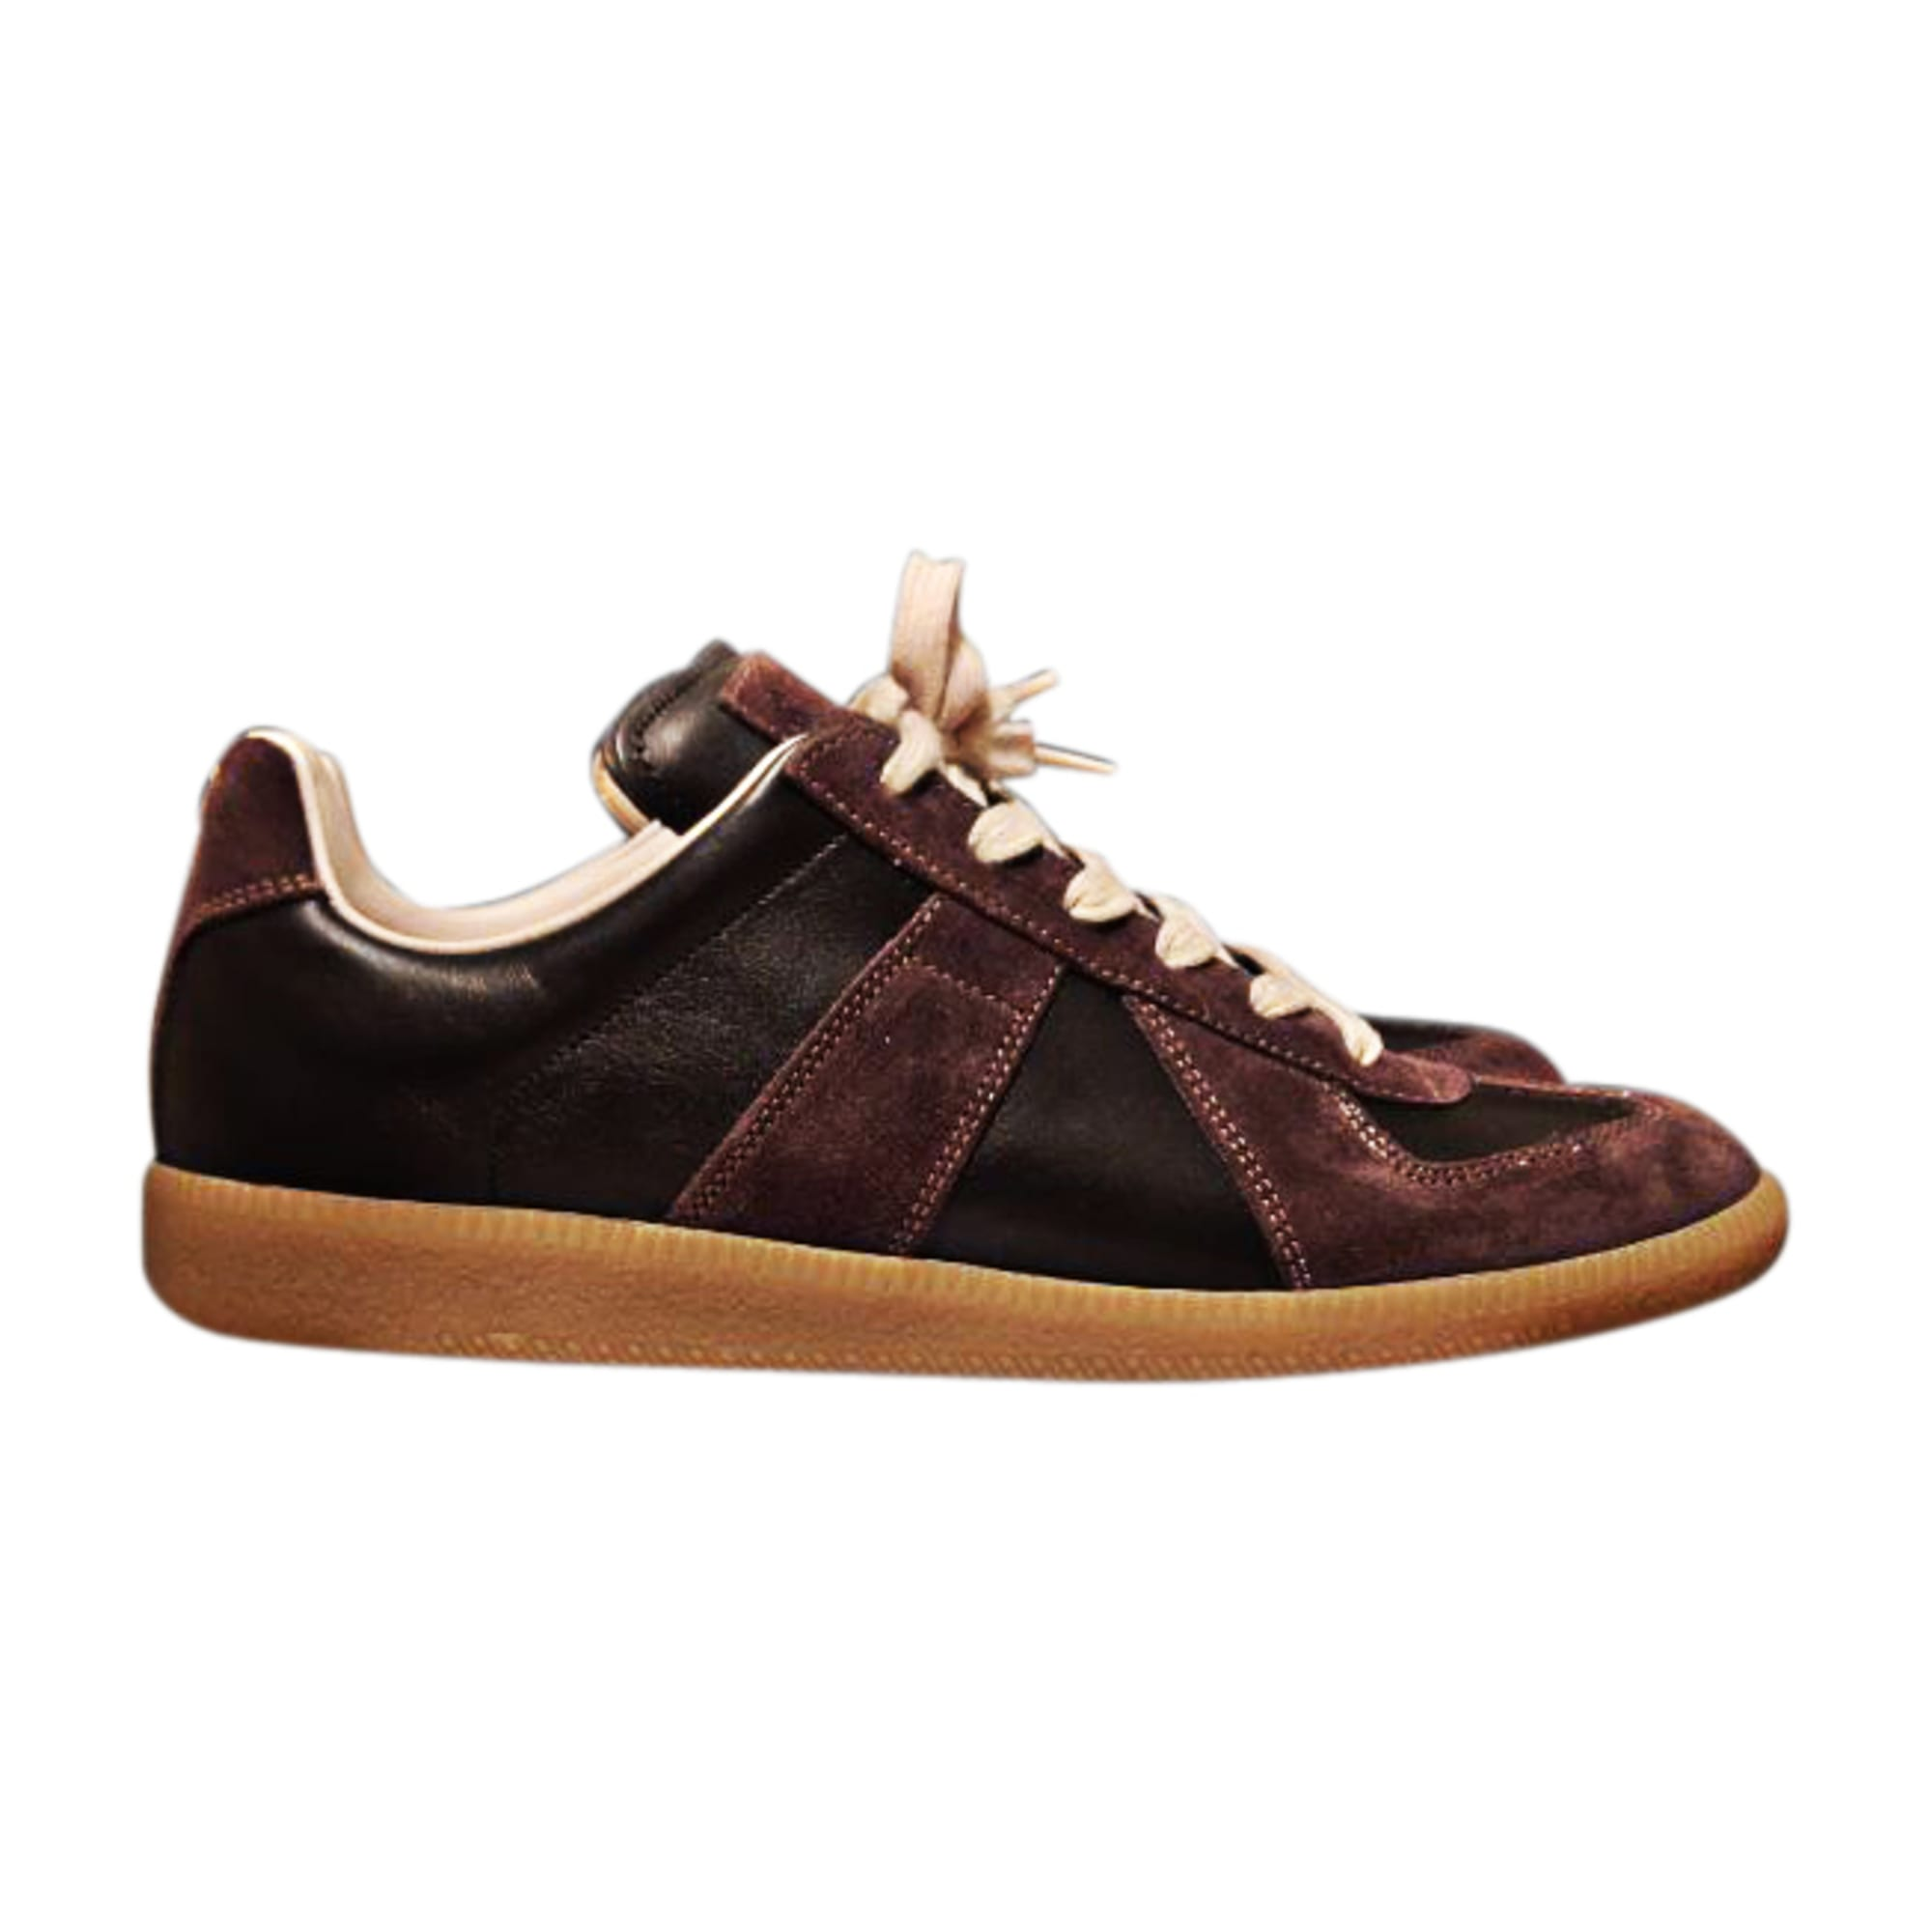 Sneakers MAISON MARTIN MARGIELA Brown